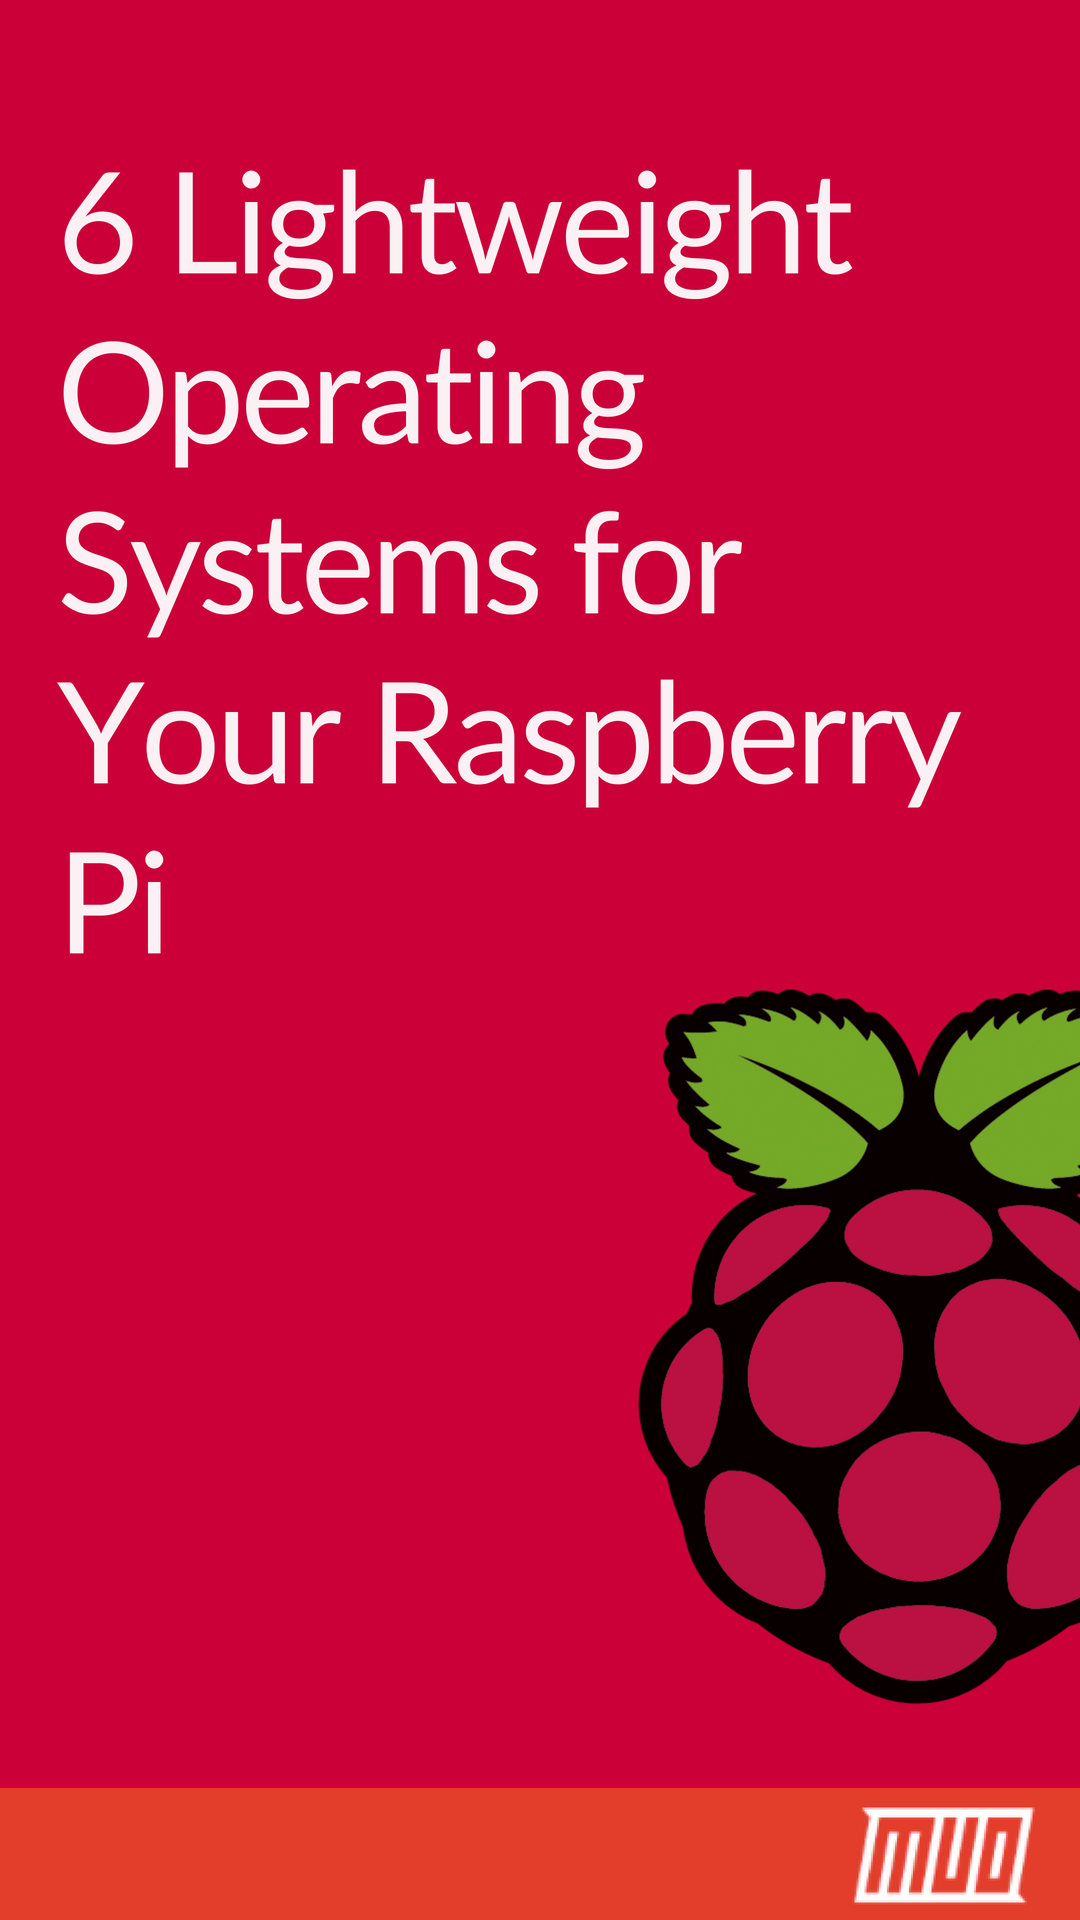 6 Lightweight Operating Systems for Your Raspberry Pi in